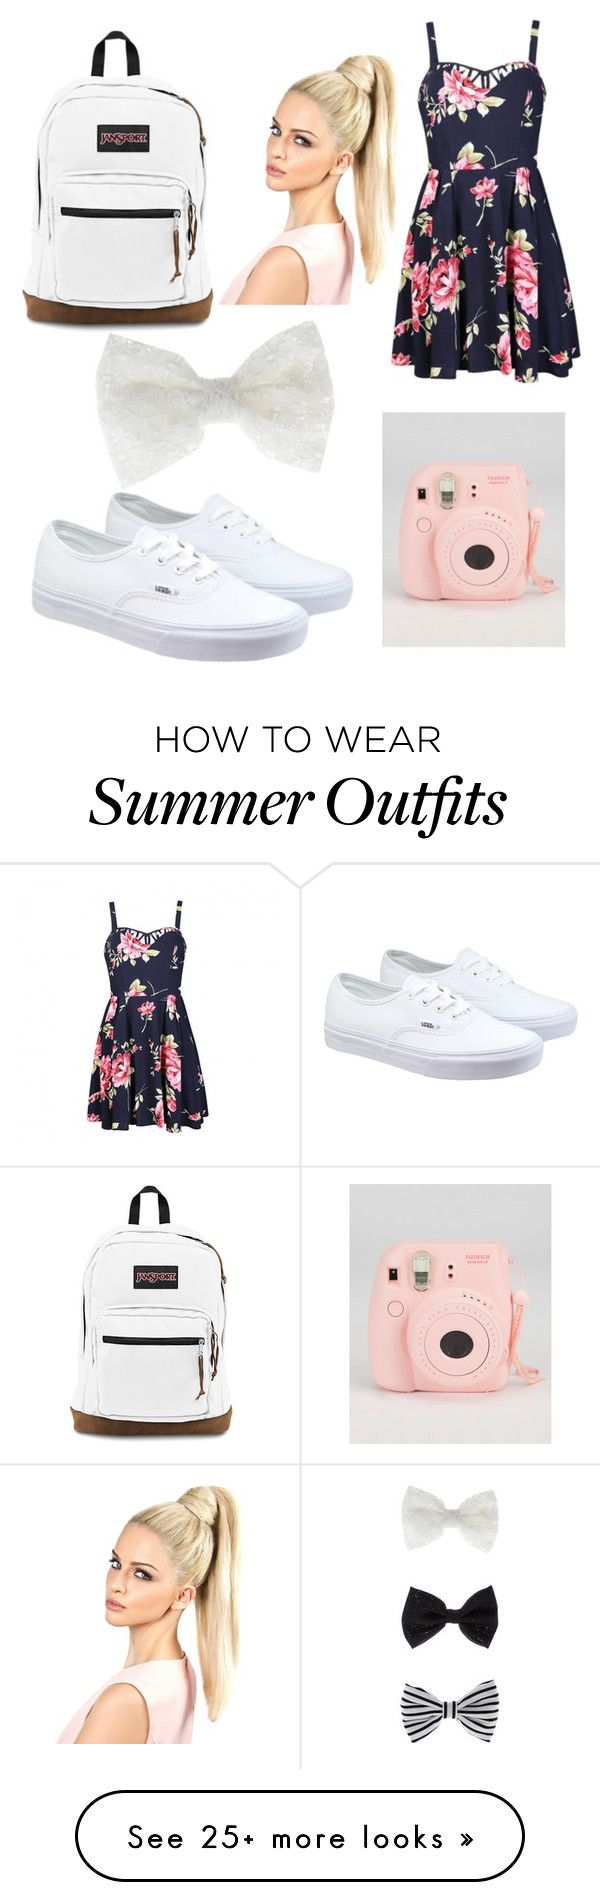 """http://3-week-diet.digimkts.com/ This is perhaps the best change I've ever made. """"Just another outfit"""" by oliveclayton on Polyvore featuring Ally Fashion, Vans, JanSport and Accessorize"""